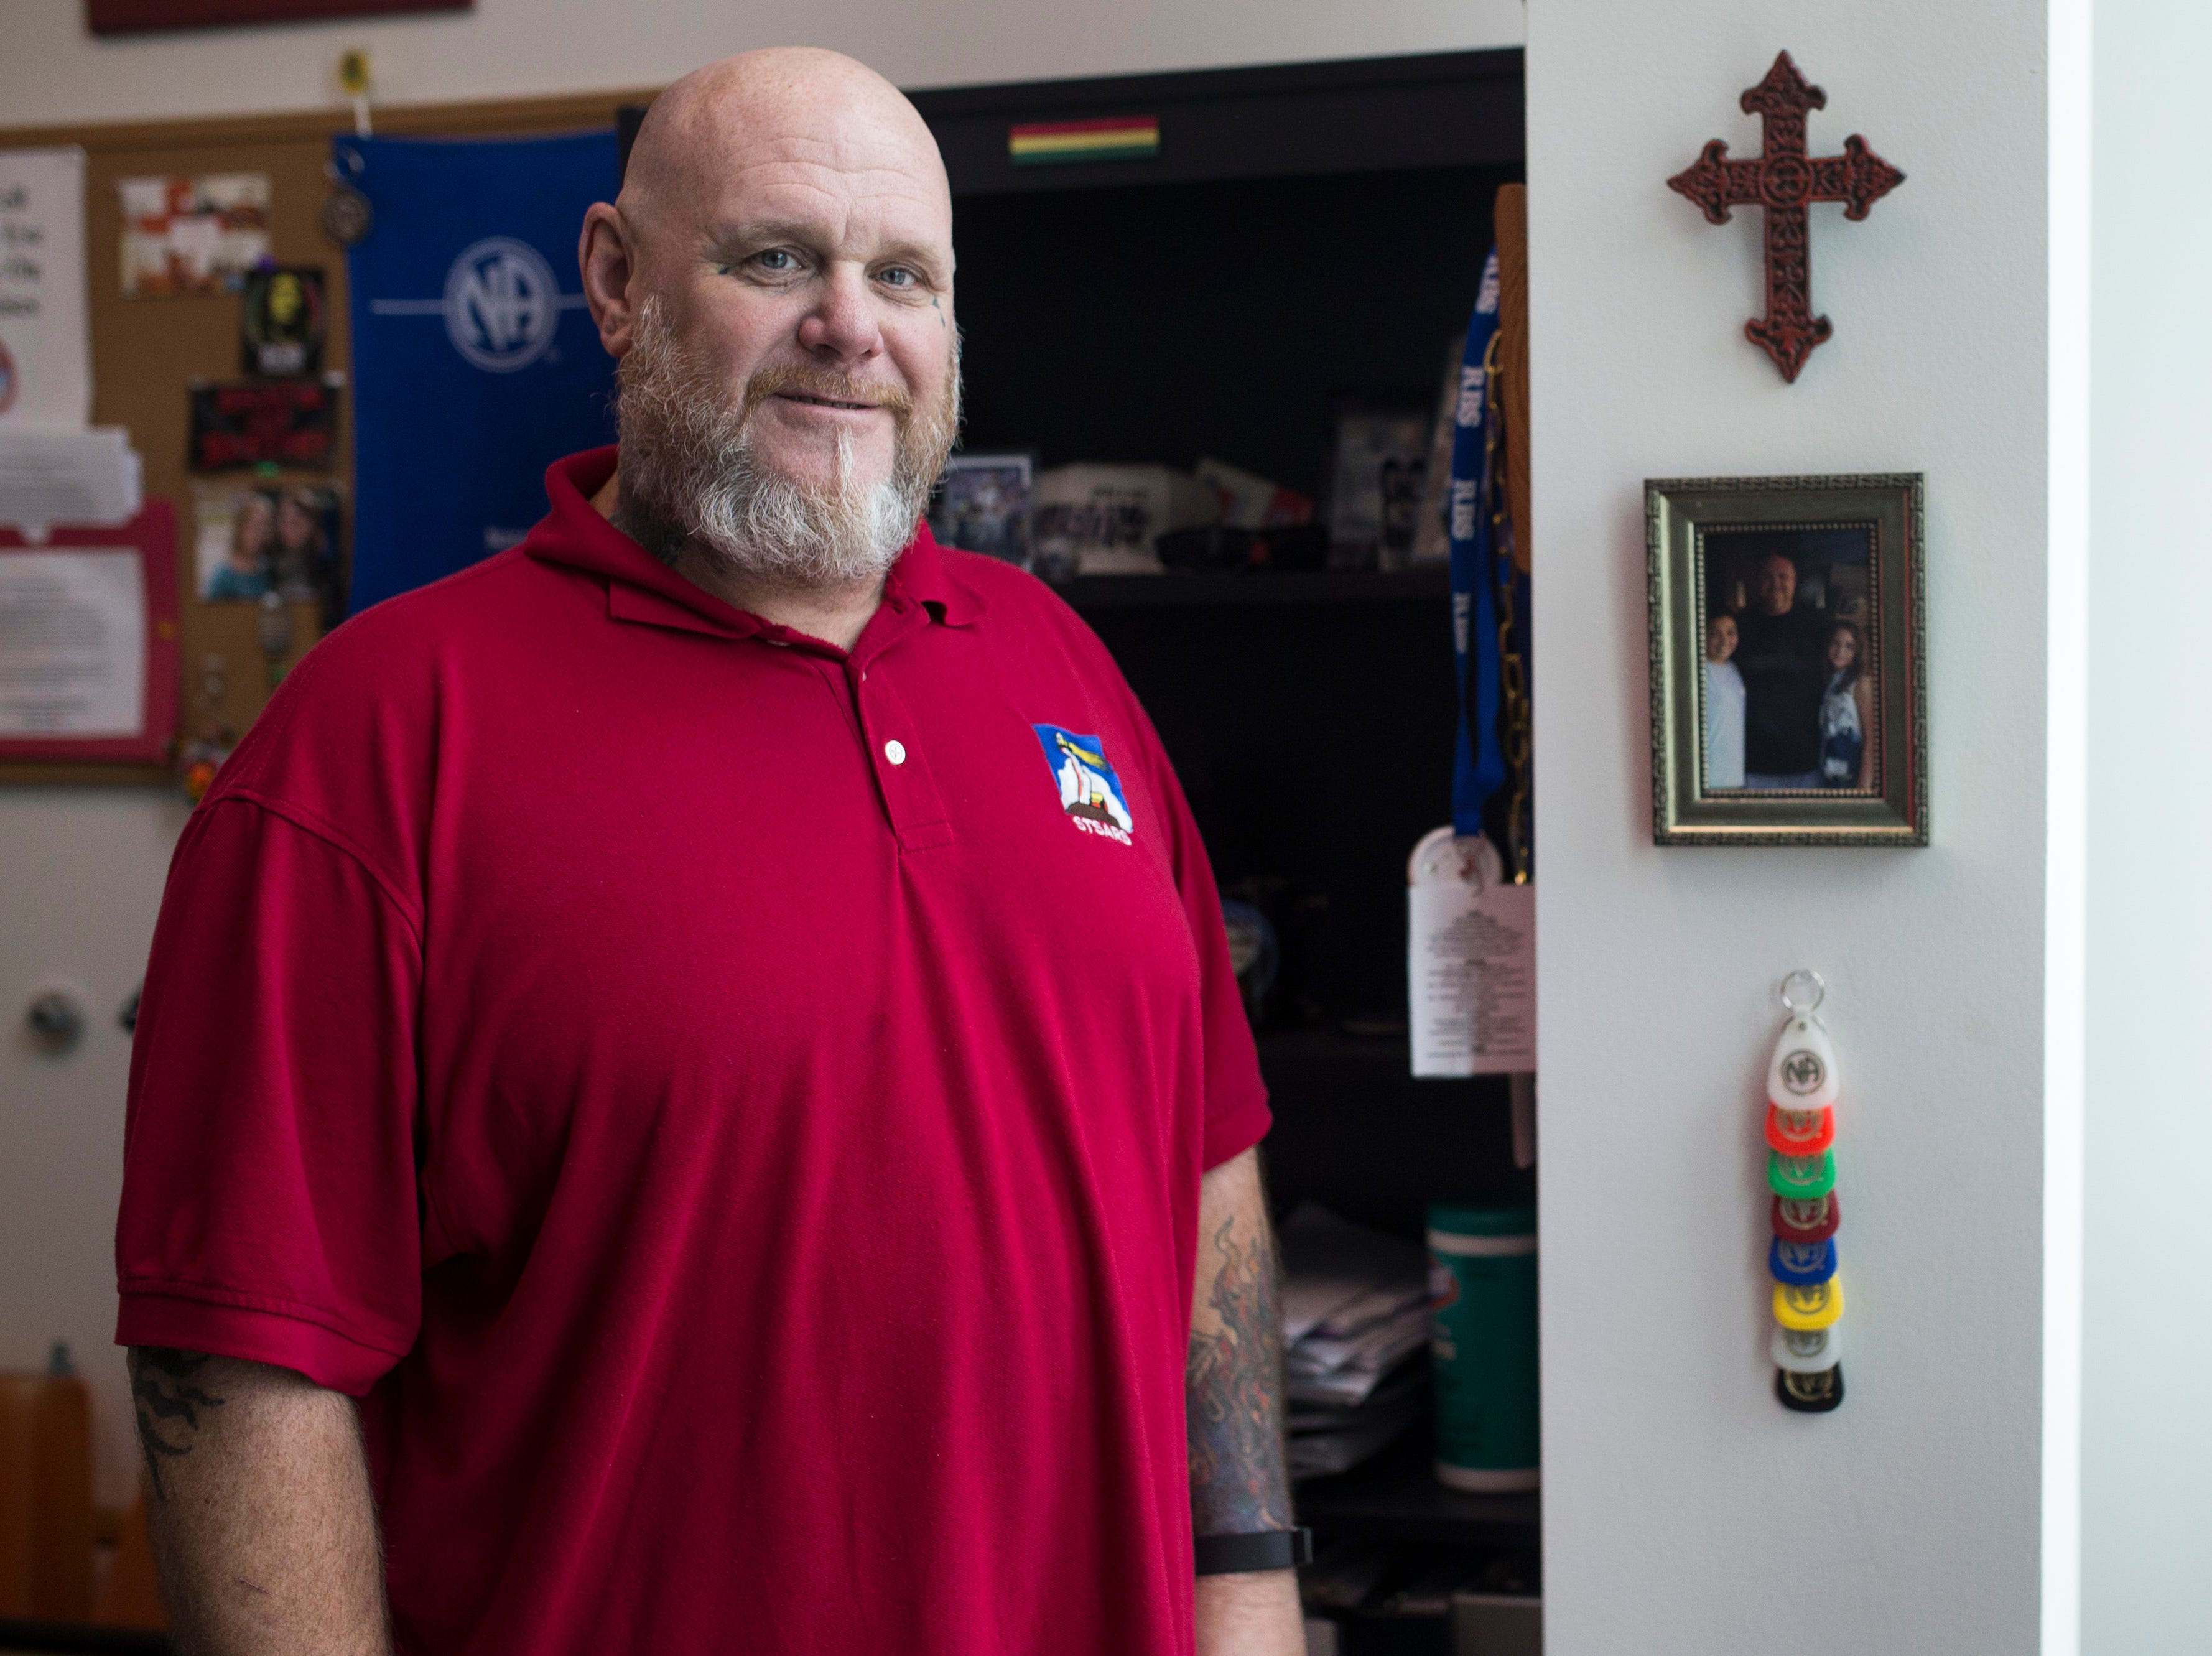 Troy Walters is a drug counselor forSouth Texas Substance Abuse Recovery Services. He said Corpus Christi has a major issue with heroin, one of several opioids.